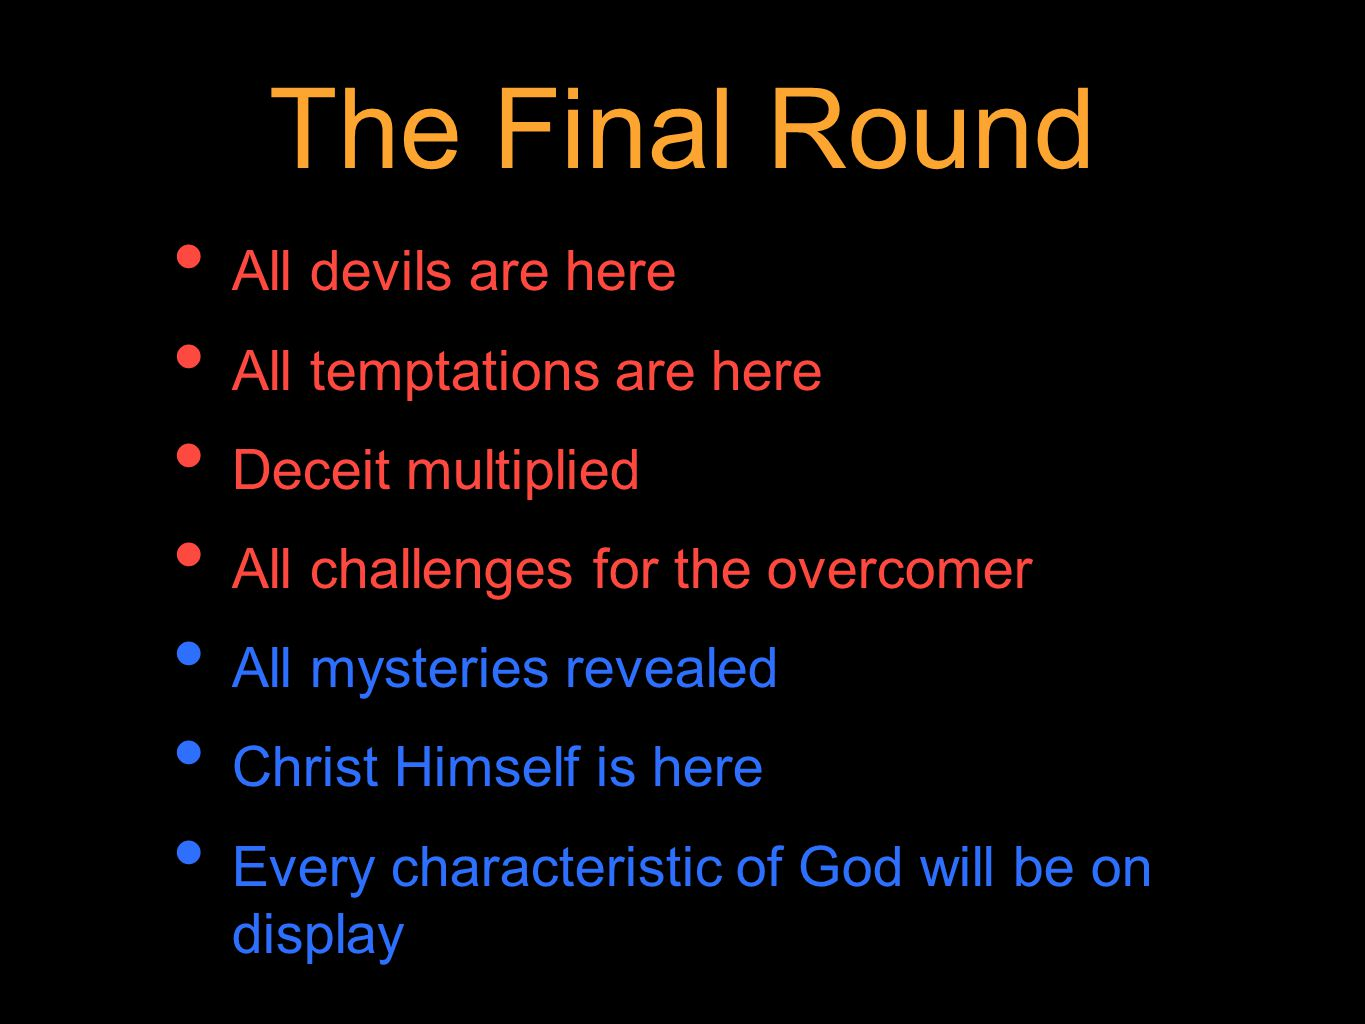 The Final Round All devils are here All temptations are here Deceit multiplied All challenges for the overcomer All mysteries revealed Christ Himself is here Every characteristic of God will be on display